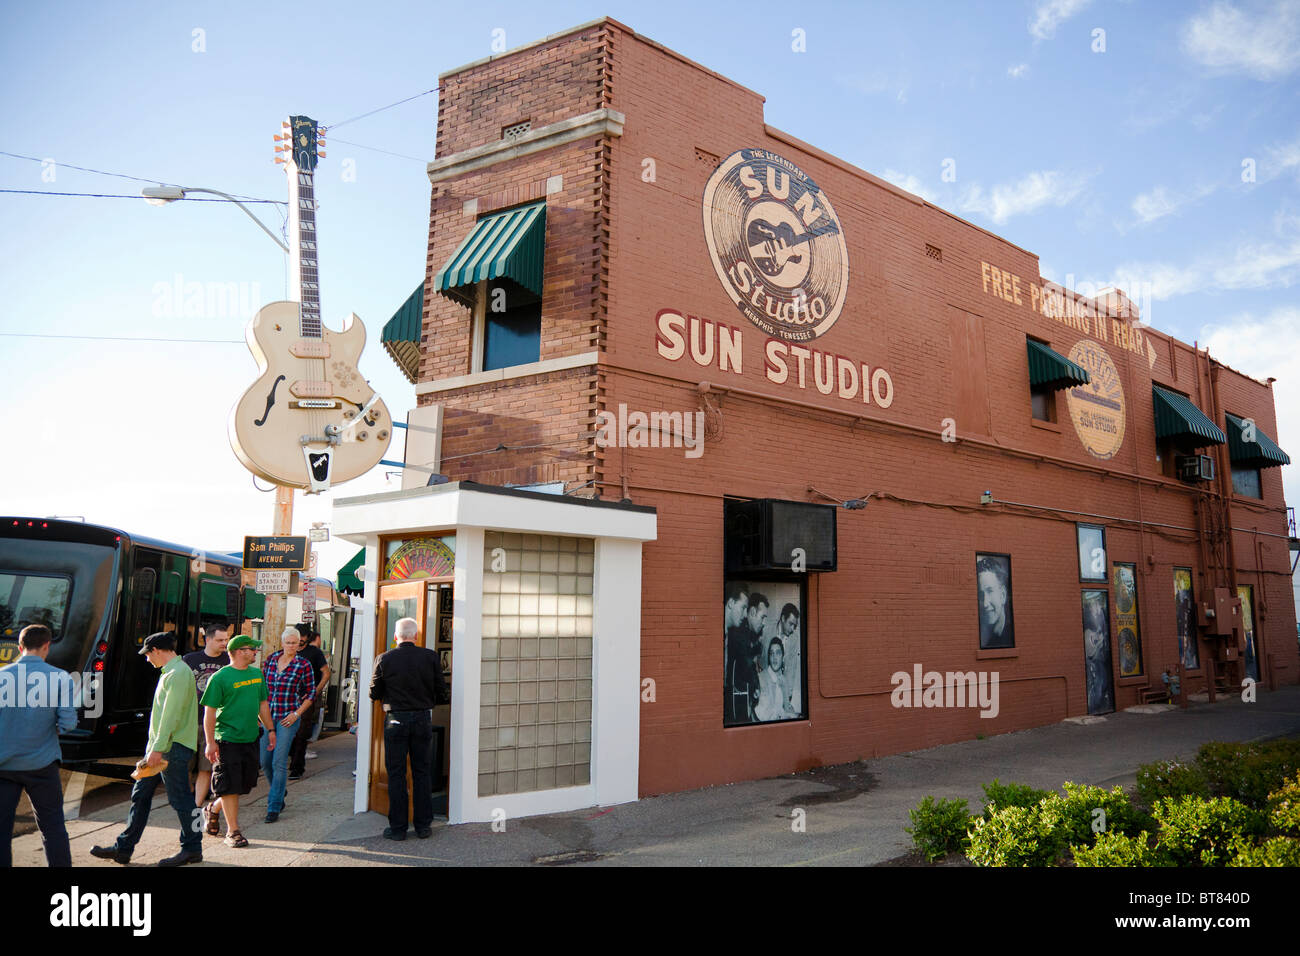 Exterior and main entrance of the Sun Studio, Memphis, Tn, - Stock Image